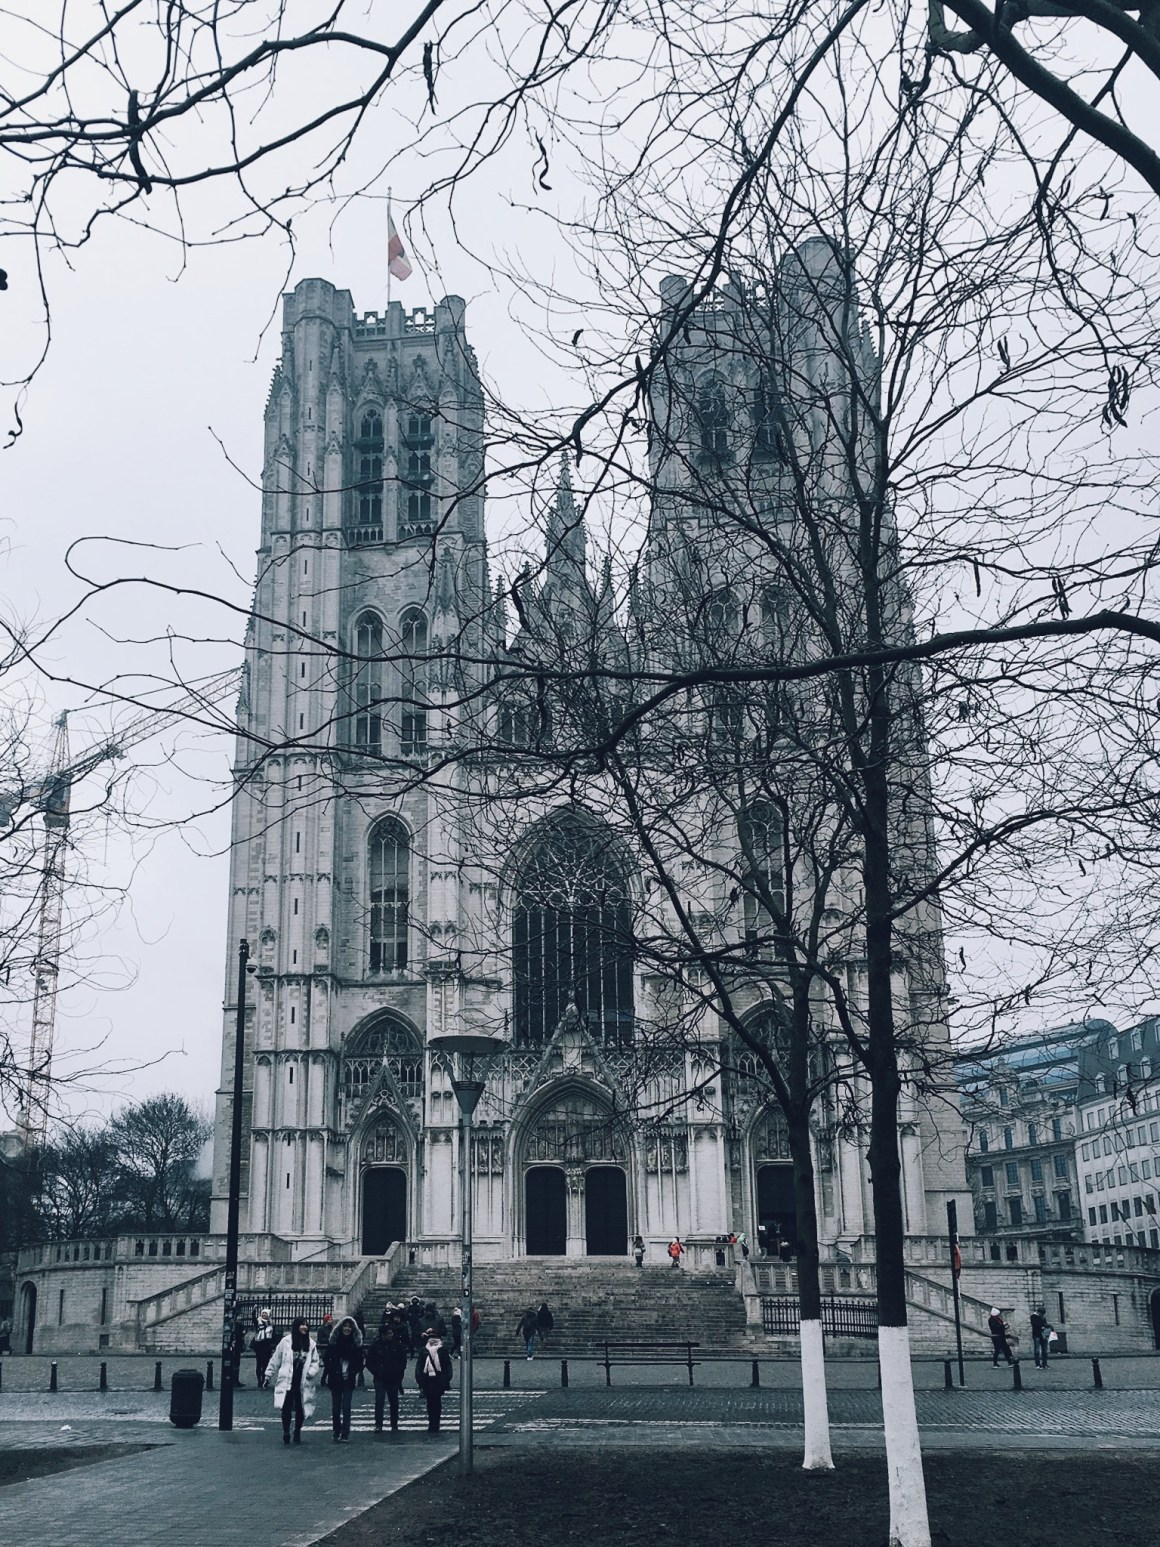 Cathedrals in Europe